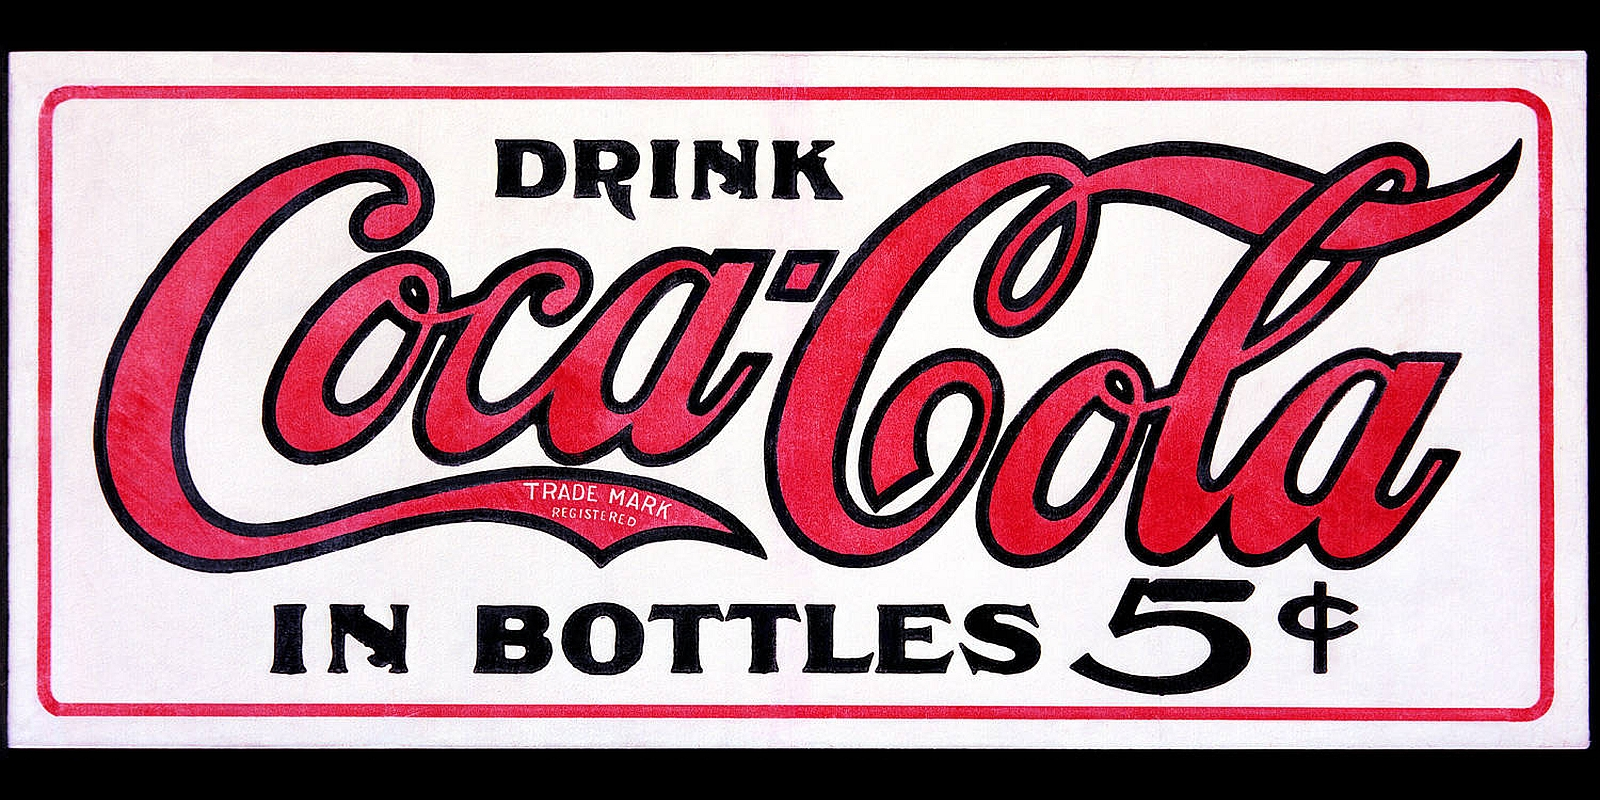 Coca cola computer wallpapers desktop backgrounds 1600x800 id 402375 - Vintage coke wallpaper ...